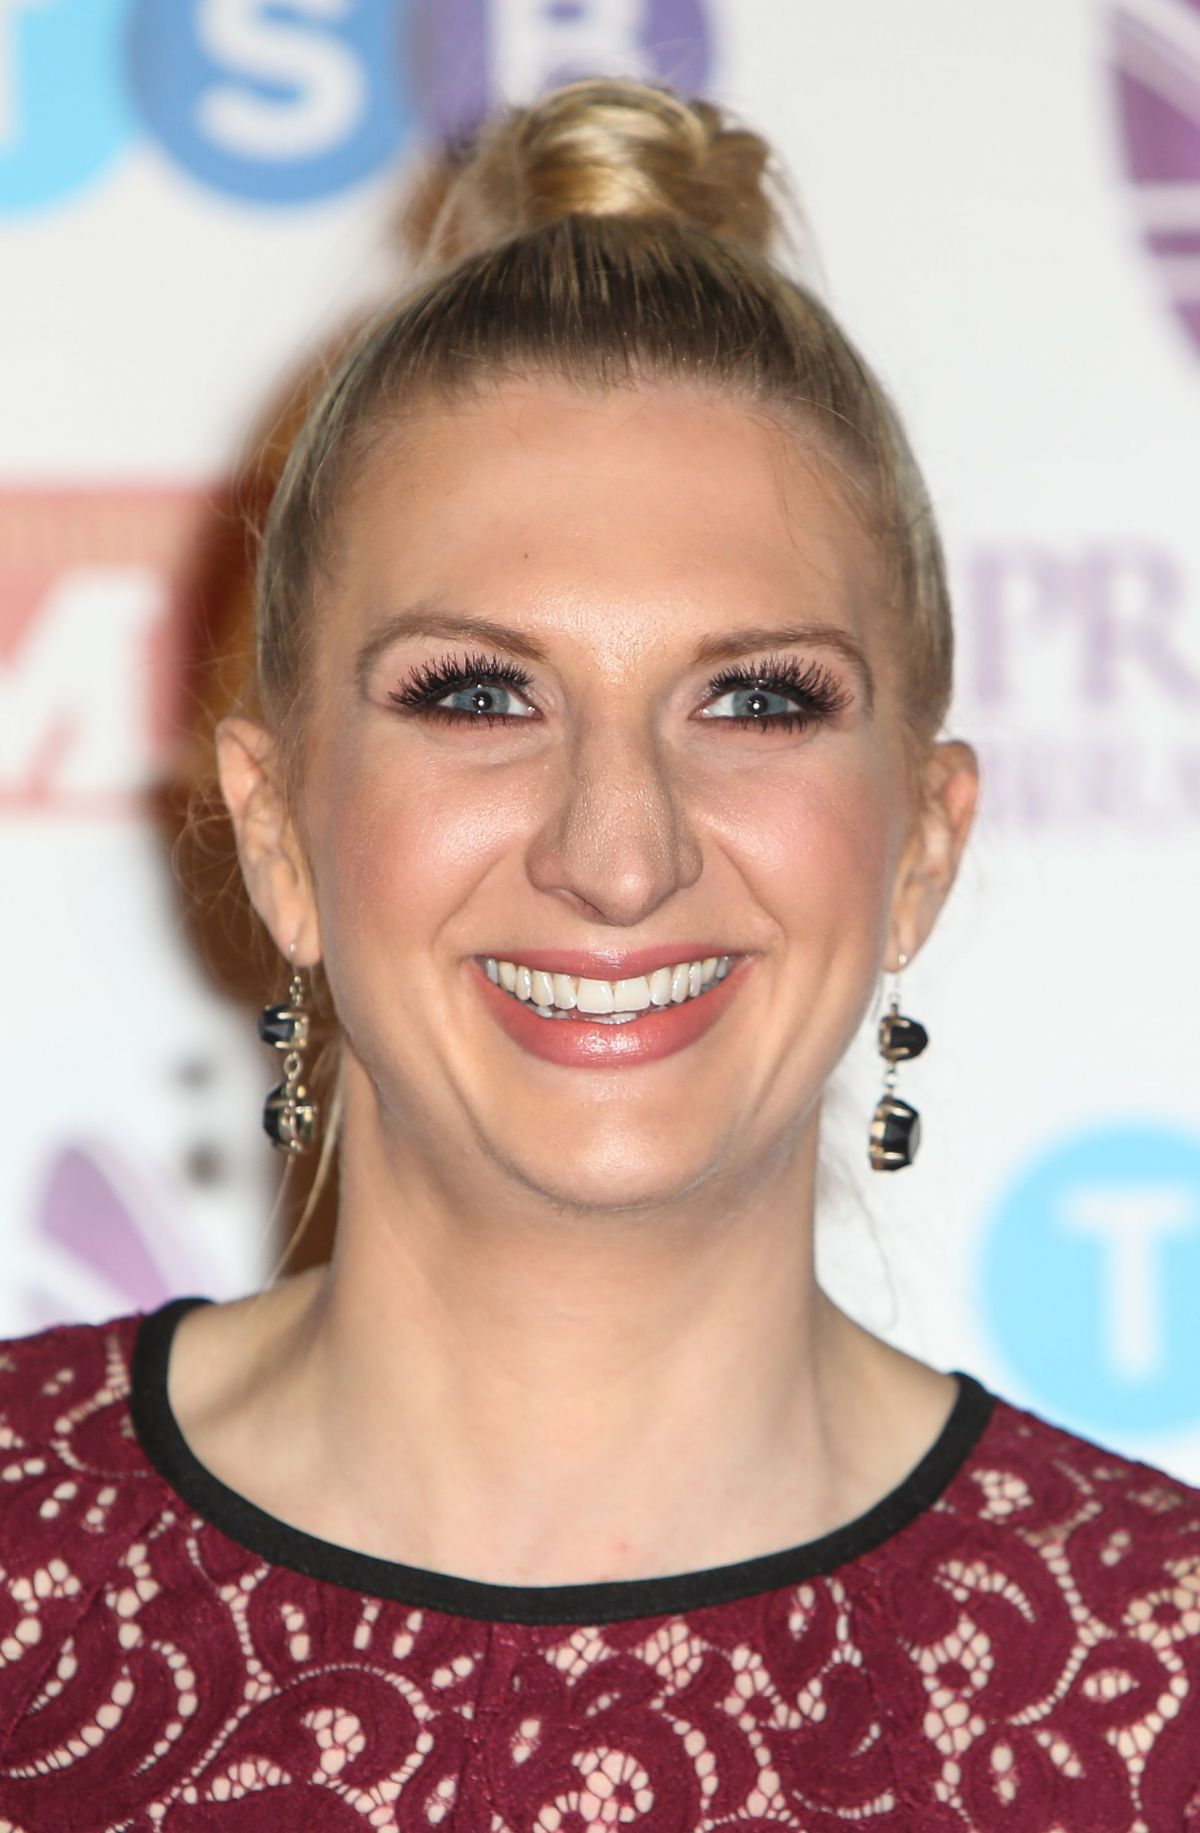 rebecca adlington - photo #21